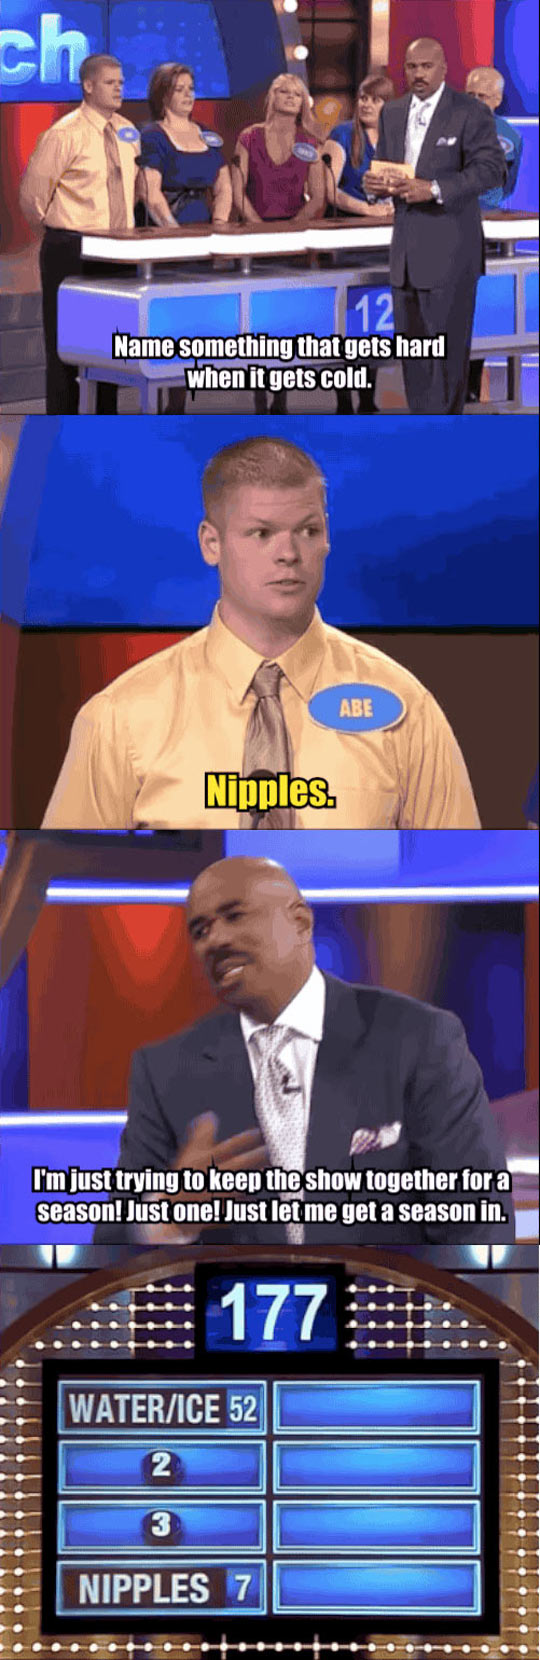 Family Feud is supposed to be PG...